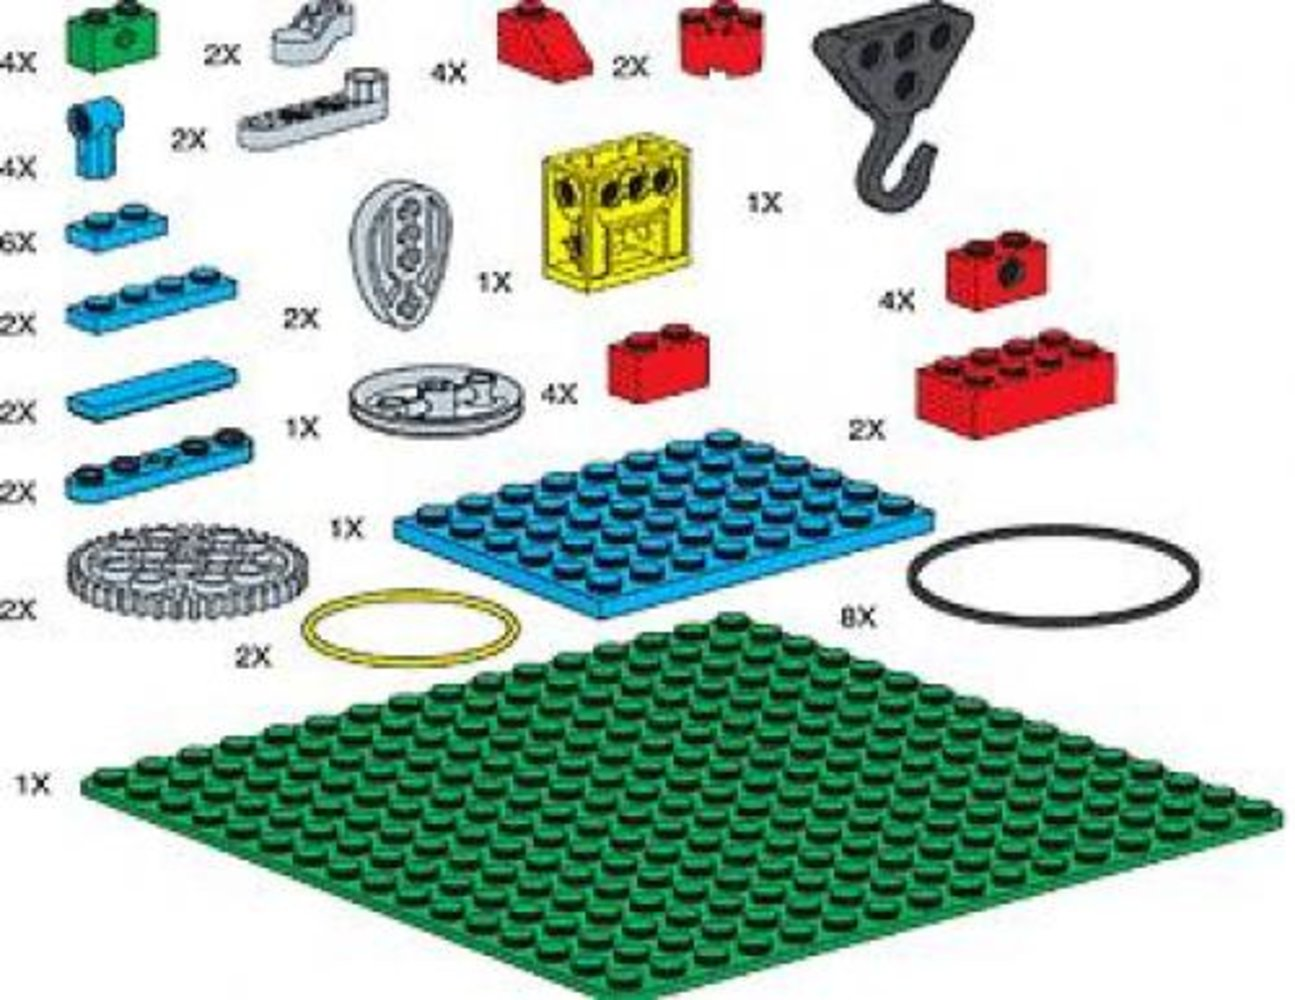 Special Elements for Simple Machines Set